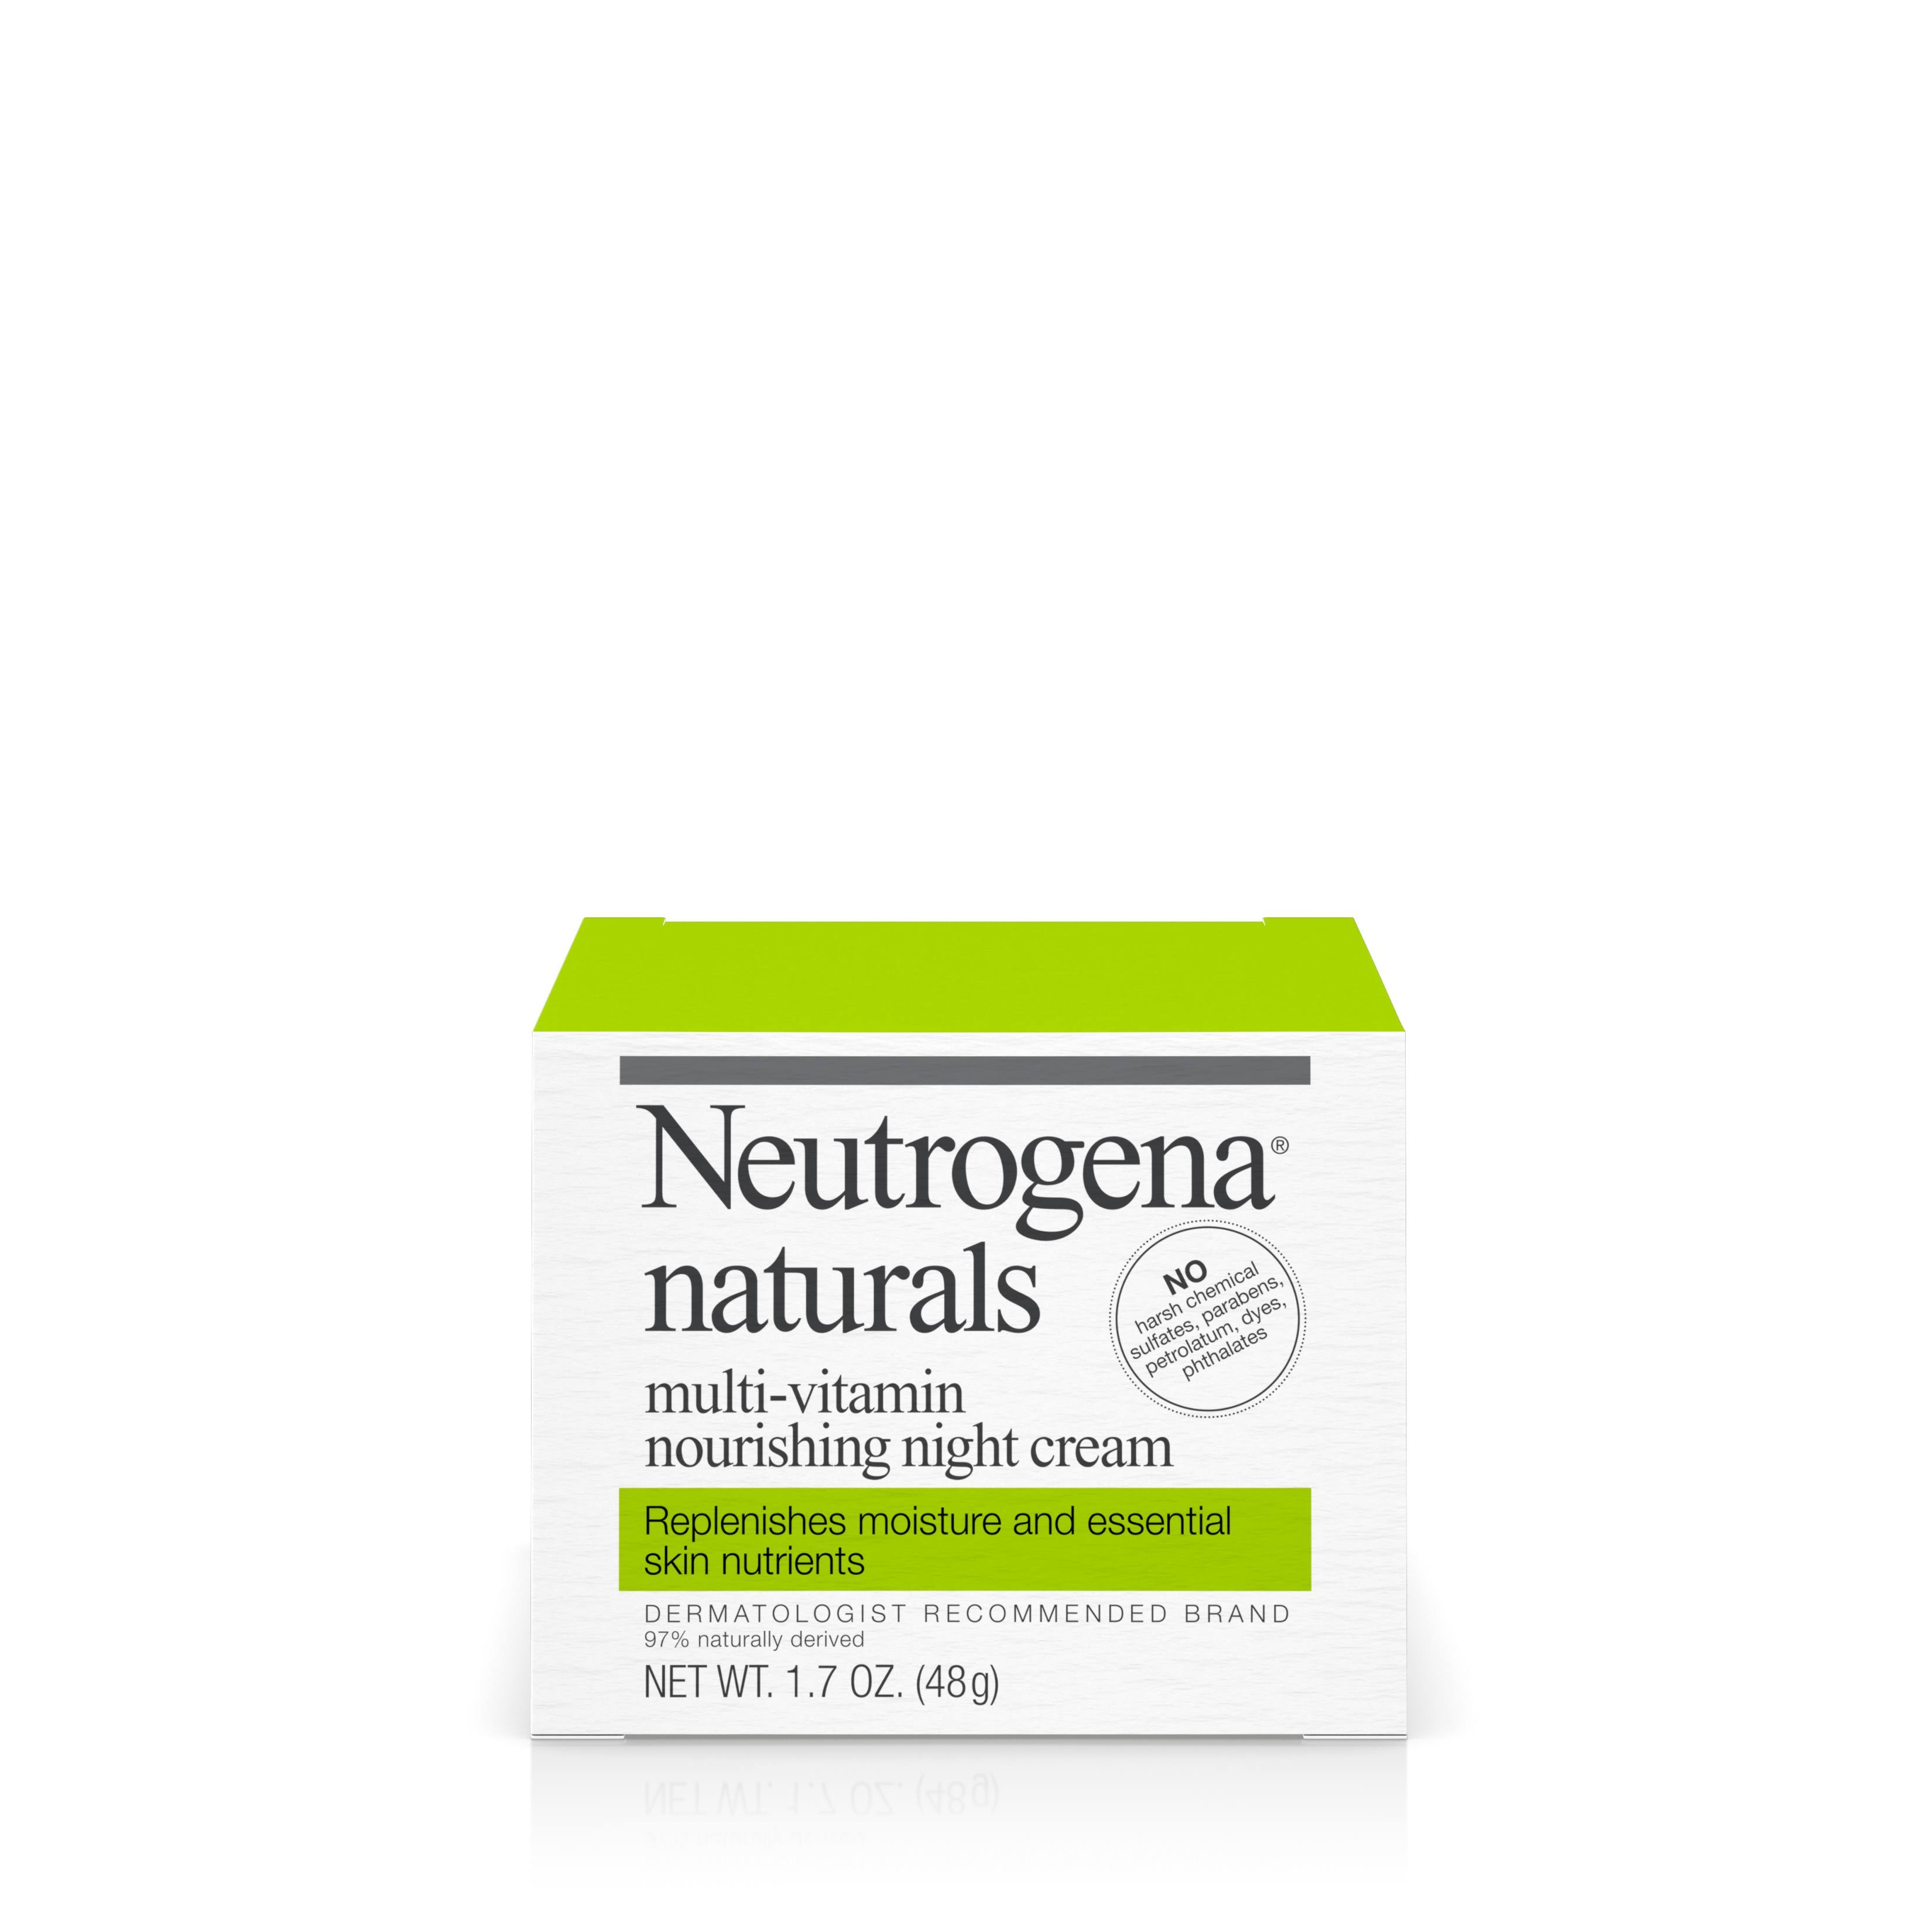 Neutrogena Naturals Multi-Vitamin Nourishing Night Cream - 1.7oz